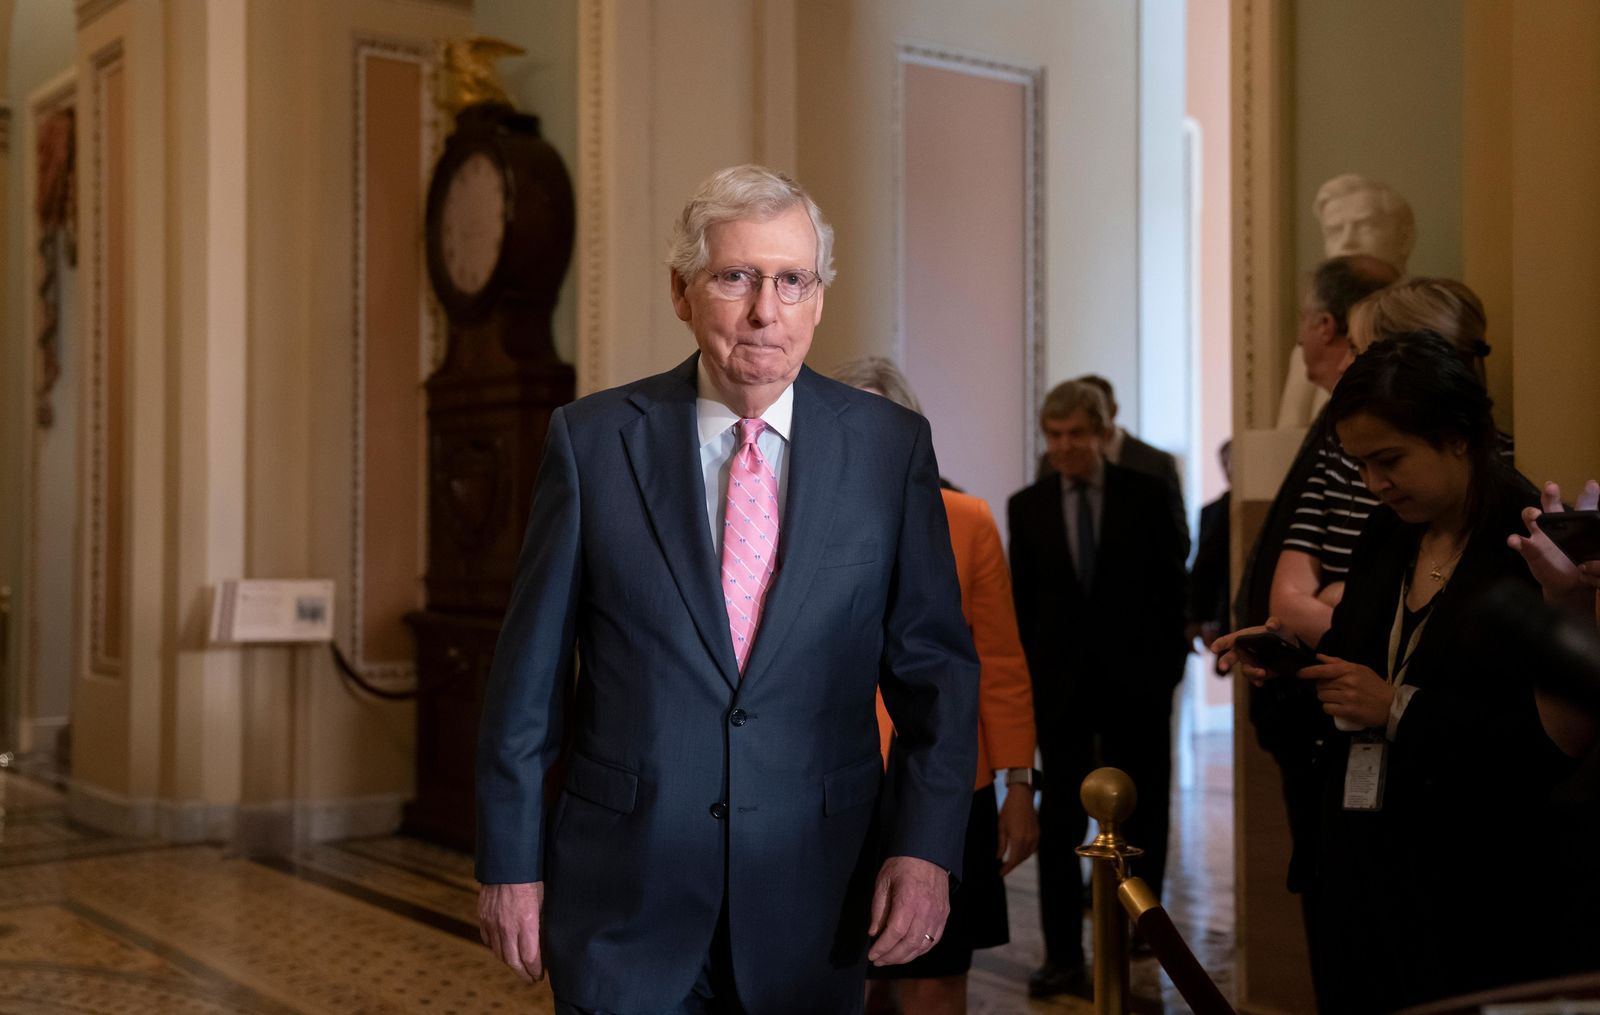 Senate Majority Leader Mitch McConnell, R-Ky., arrives to speak to reporters following the Republican Conference luncheon, at the Capitol in Washington, Tuesday, June 25, 2019. (AP Photo/J. Scott Applewhite)